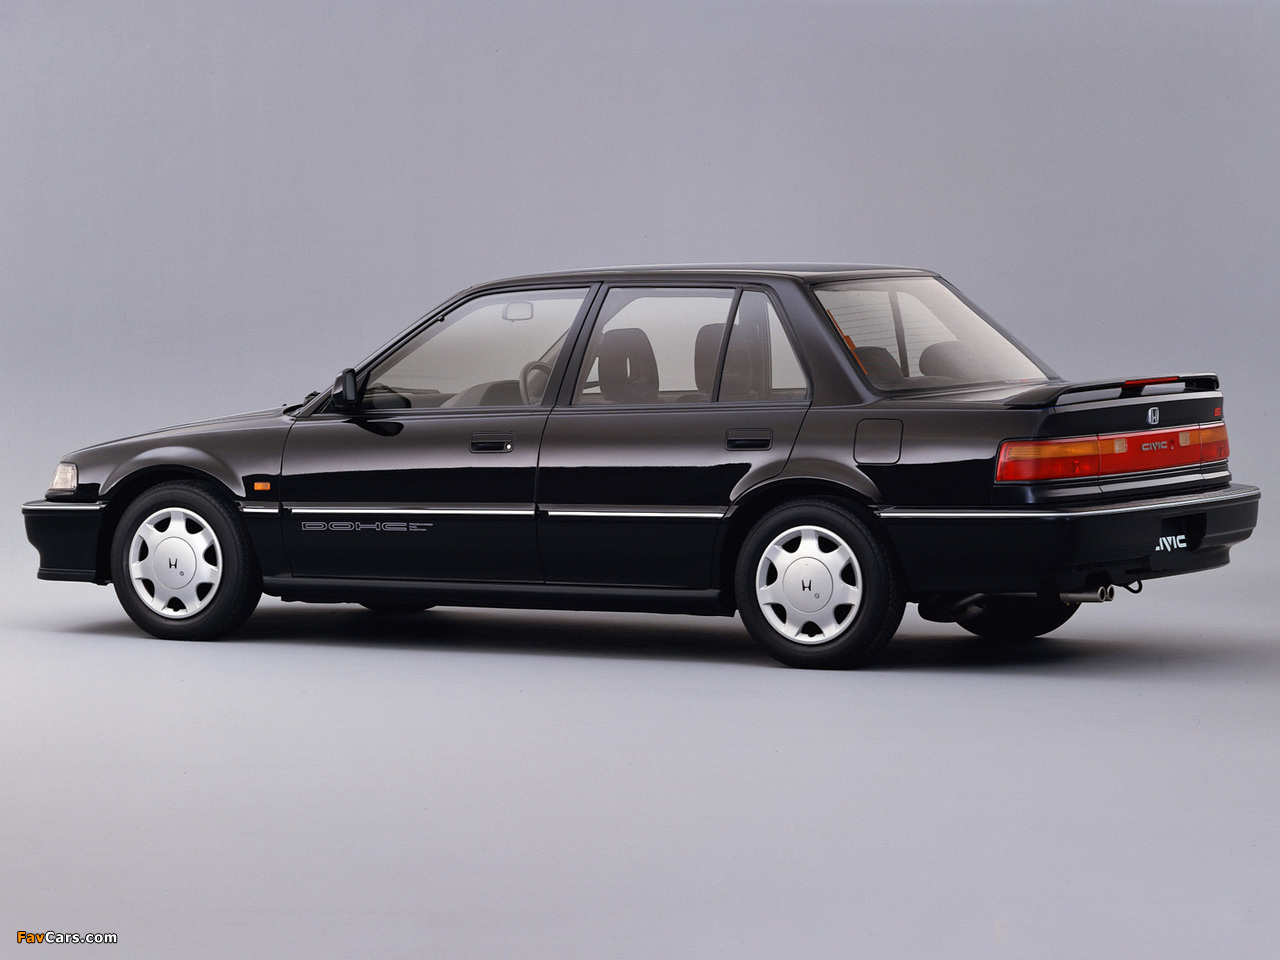 photos_honda_civic_1989_1_1280x960